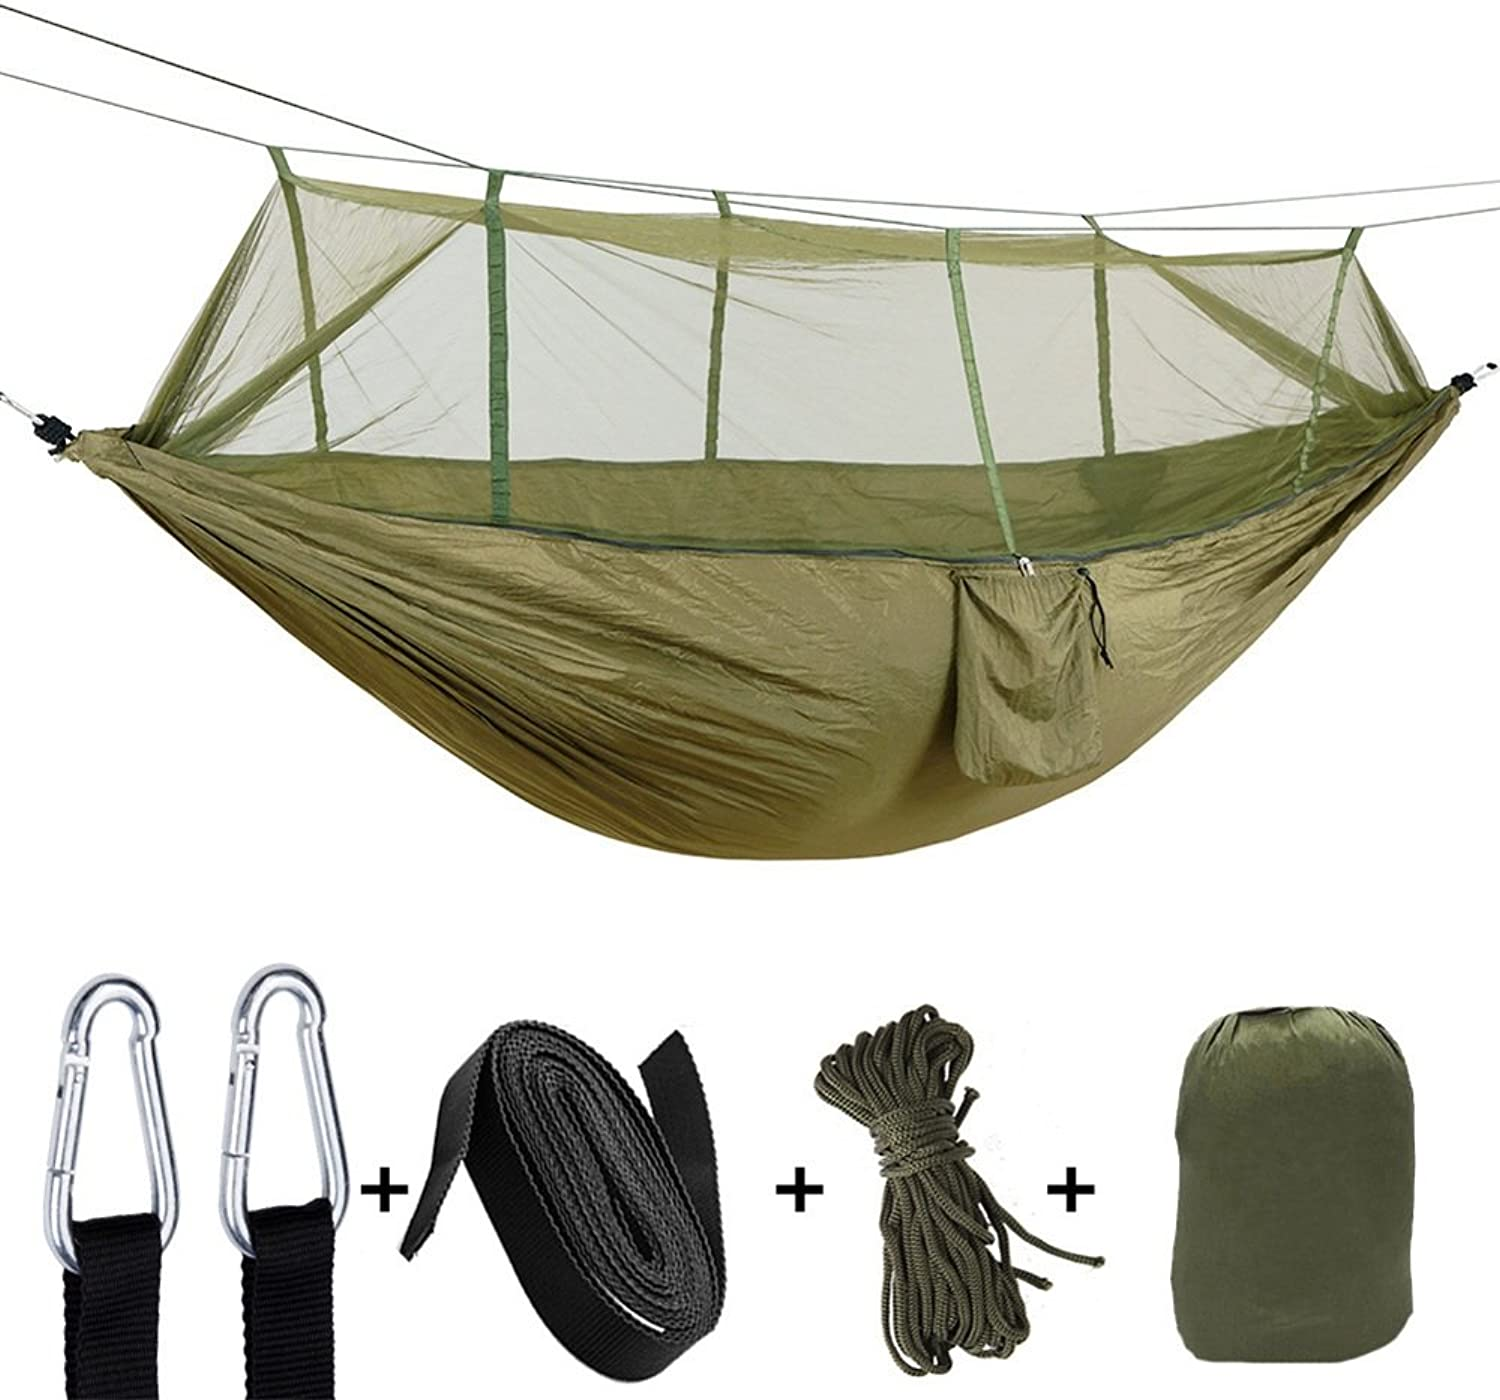 Hammock Tree Straps & Carabiners Easy Assembly Portable Parachute Nylon Hammock Single & Double Camping Hammock With Mosquito Bug Net For Camping, Backpacking, Survival, Travel & More with SpaceSavin